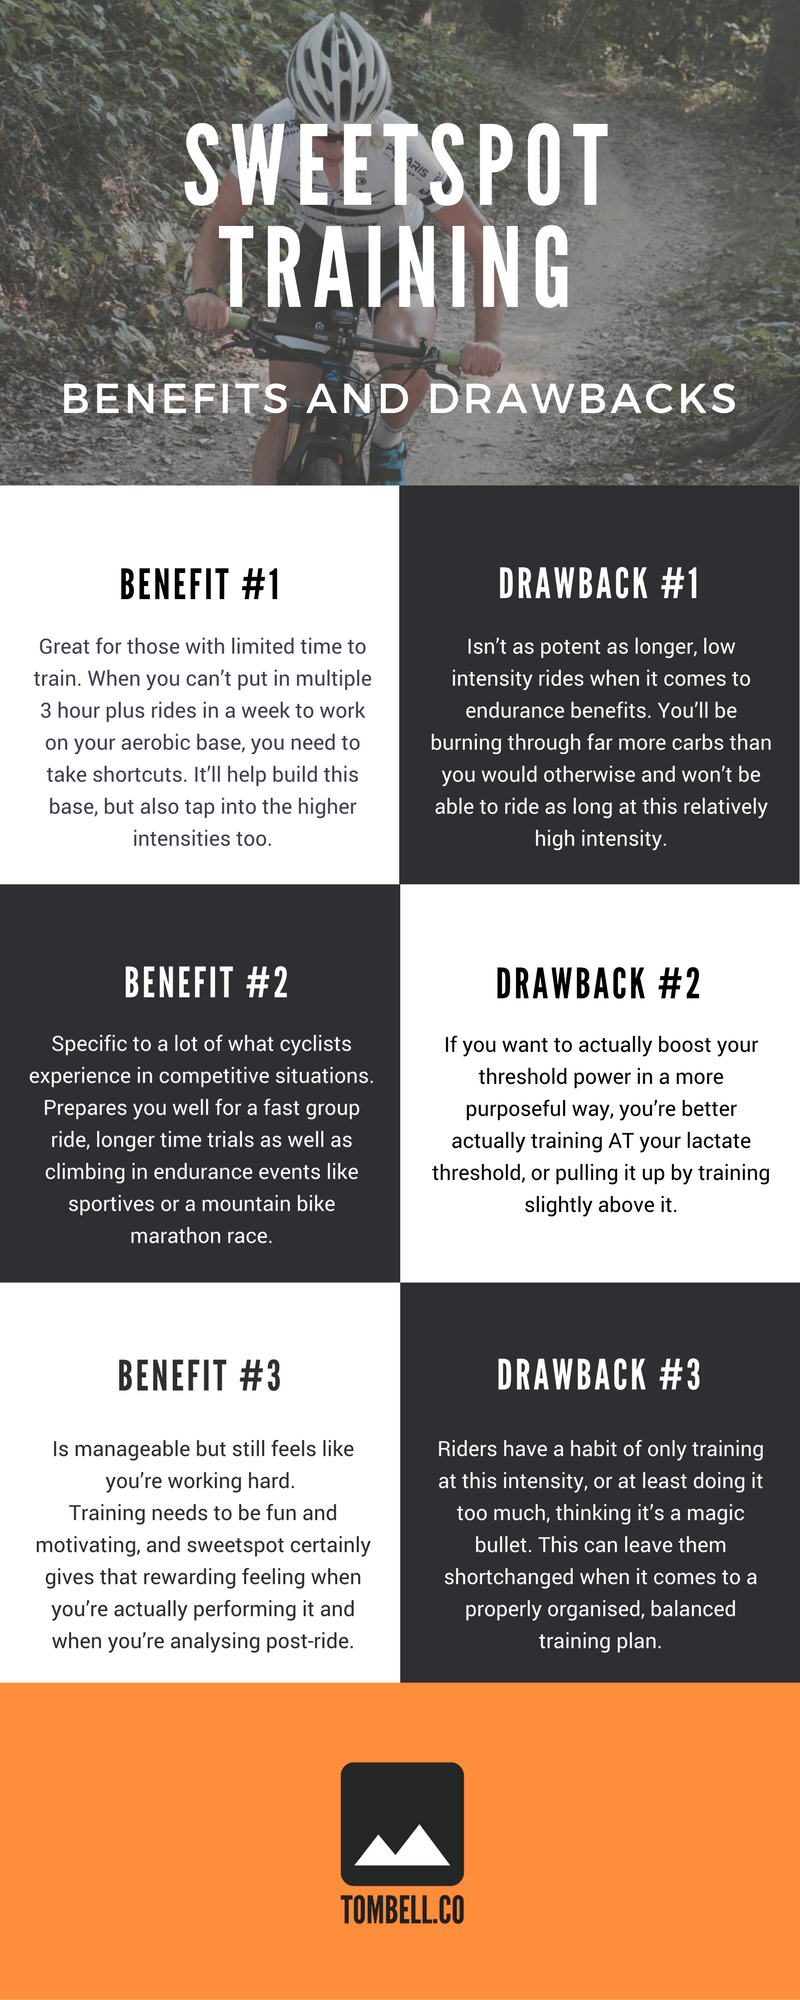 Sweetspot training for cycling: Pros and Cons. Infographic by http://www.tombell.co